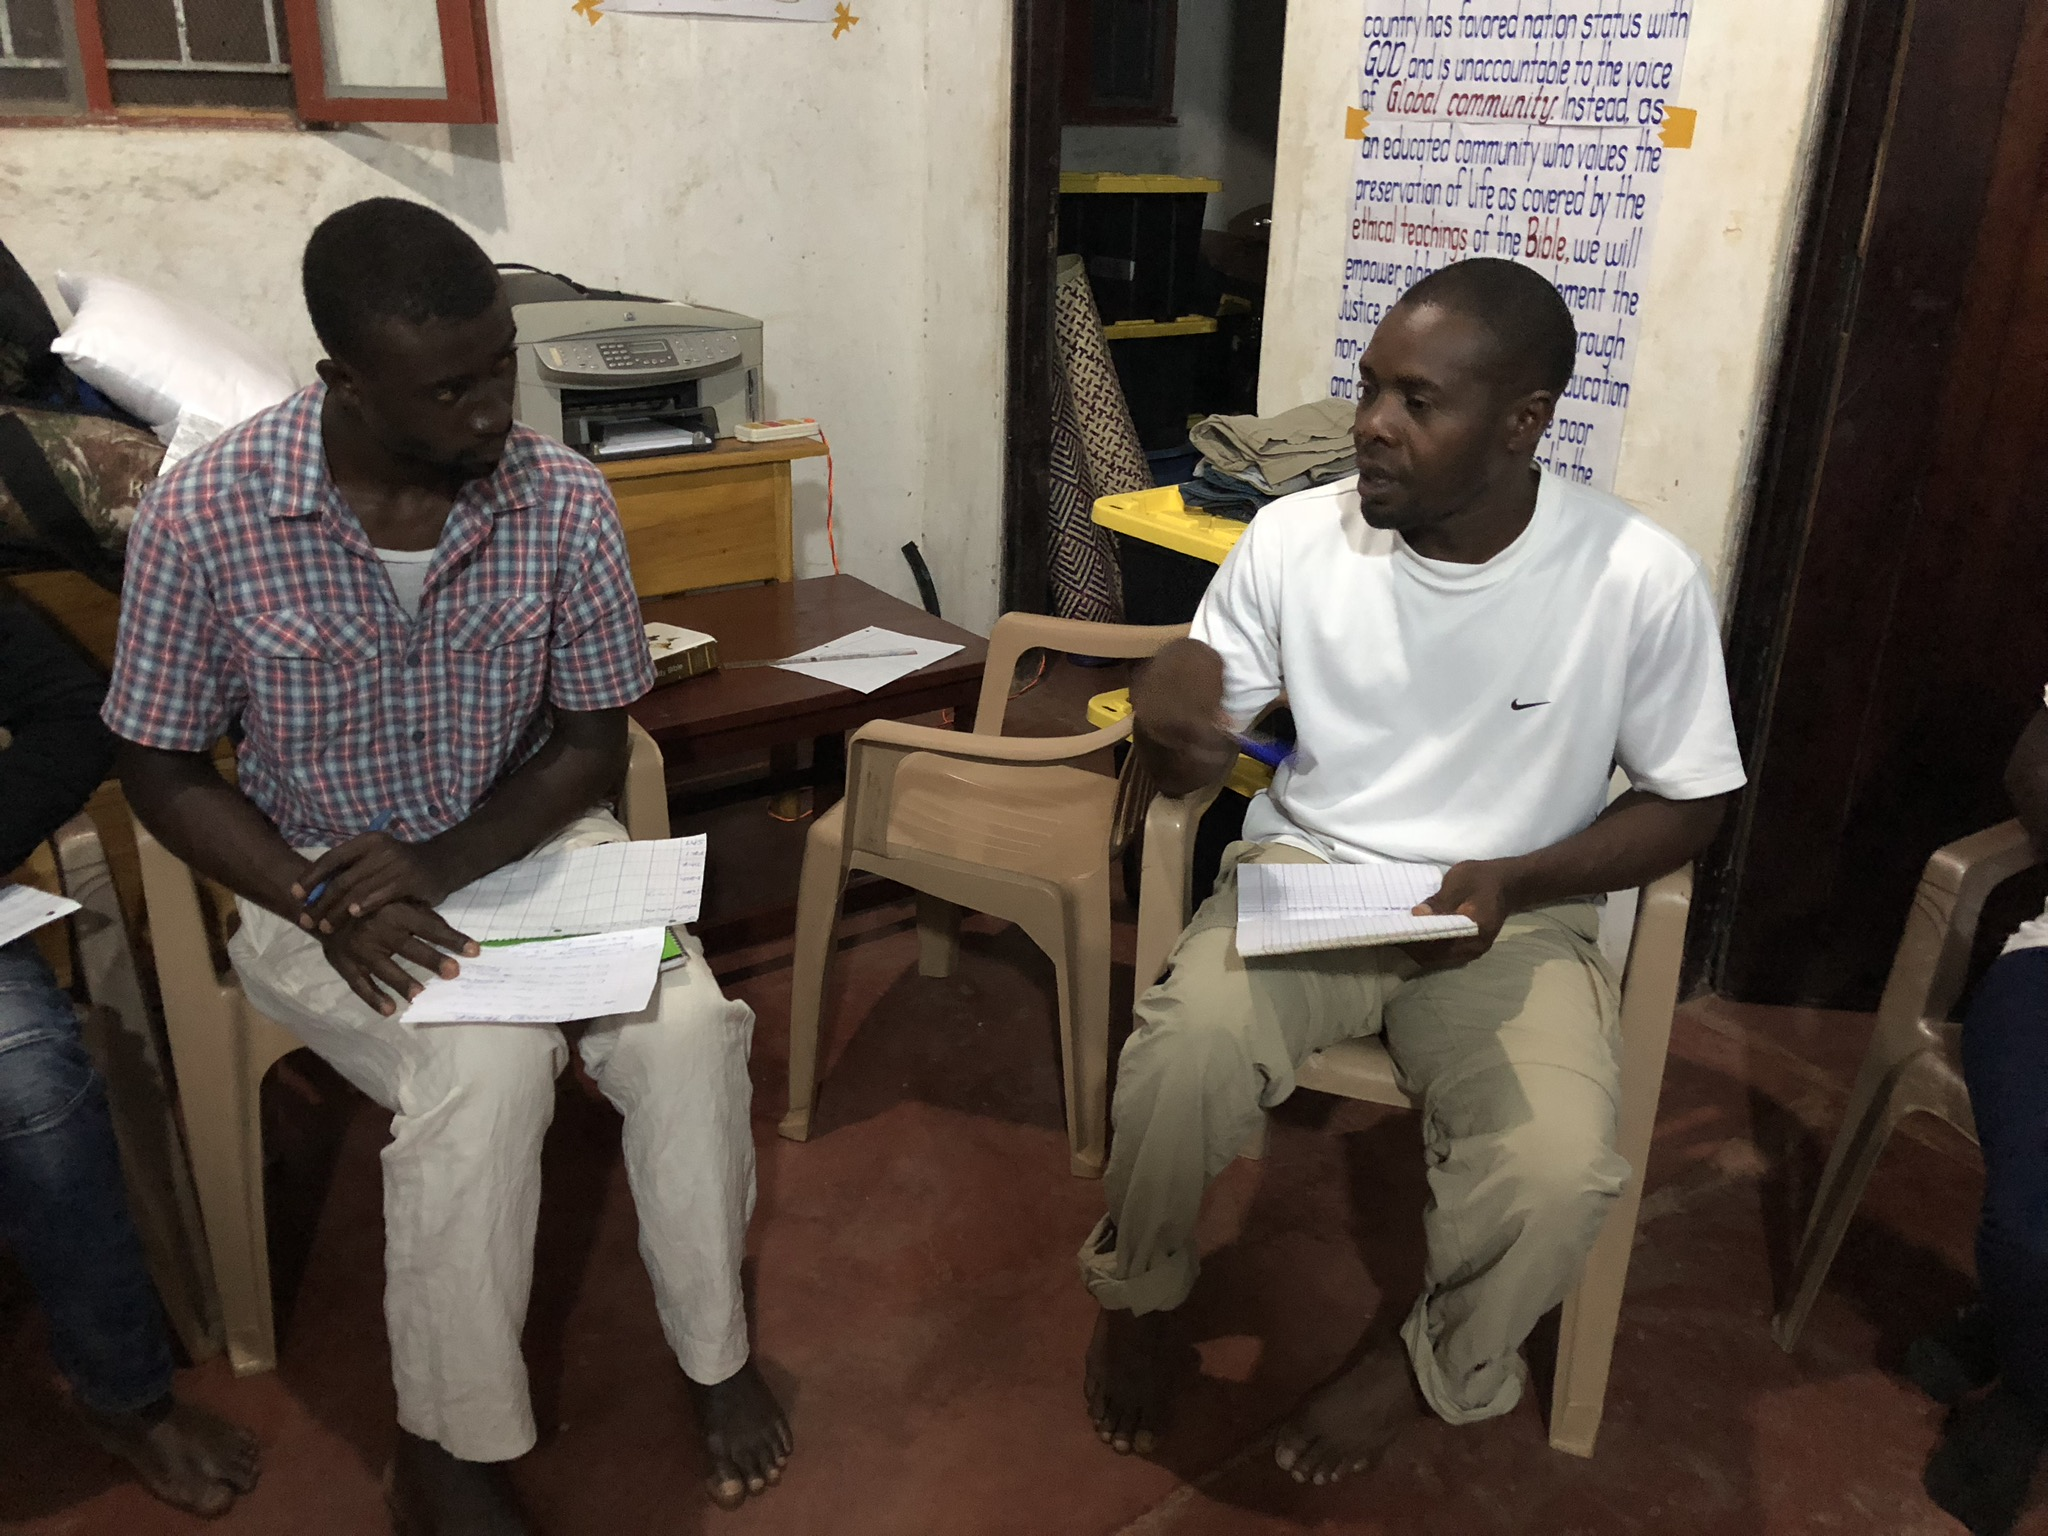 Students are also encouraged to pick a specialty arena of service, where they can gain competency in a field desperately needed in their world.  Francis Lubega (right) welcomes the help Peter Musazi (student, left) in the realm of sustainable food production.